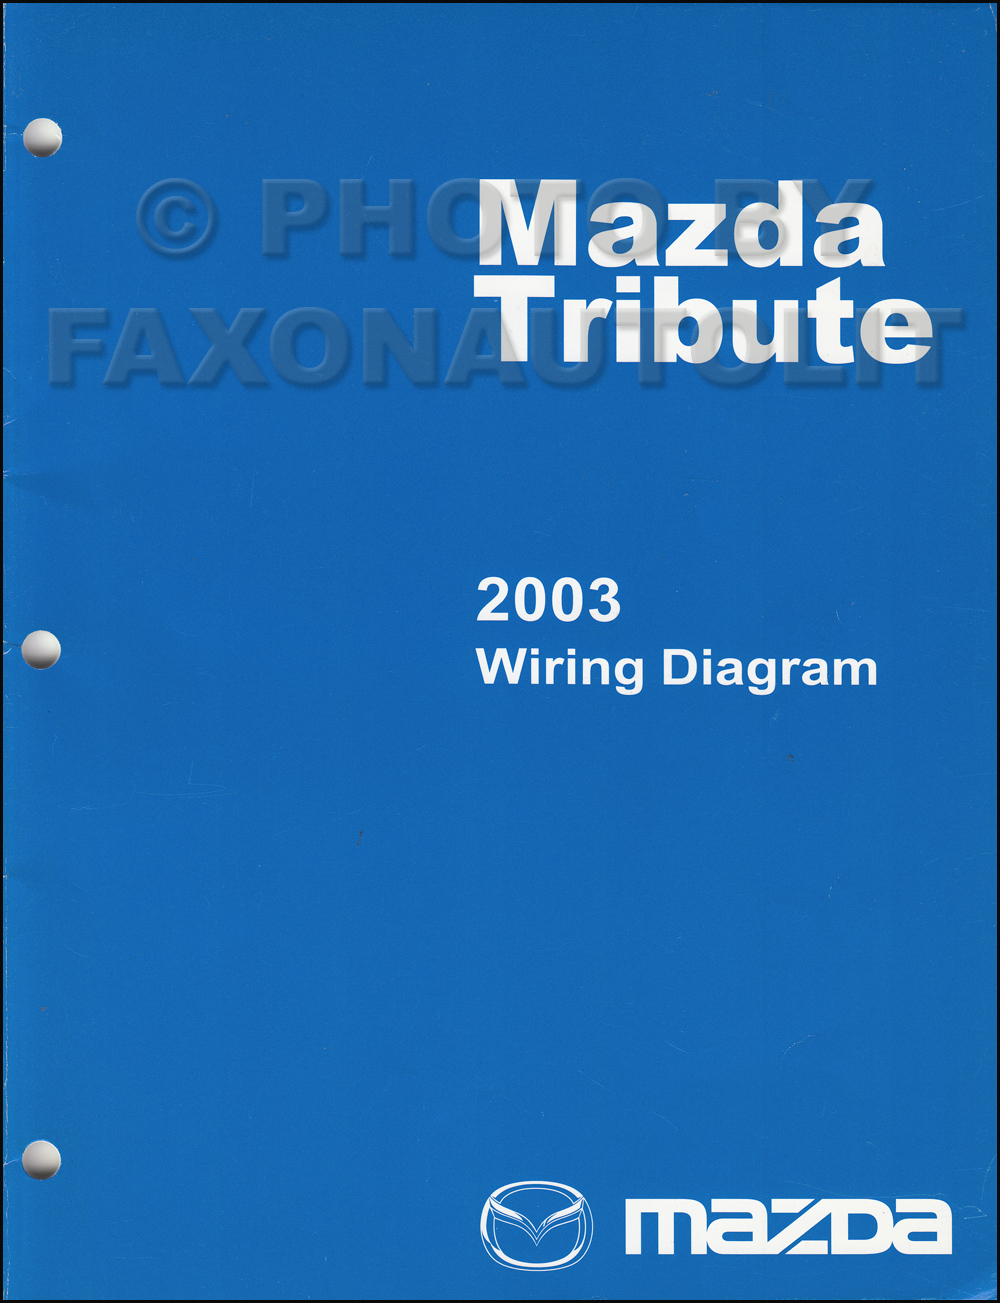 medium resolution of 2003 mazda tribute wiring diagram manual original rh faxonautoliterature com 2008 mazda tribute wiring diagram mazda tribute wiring diagram pdf